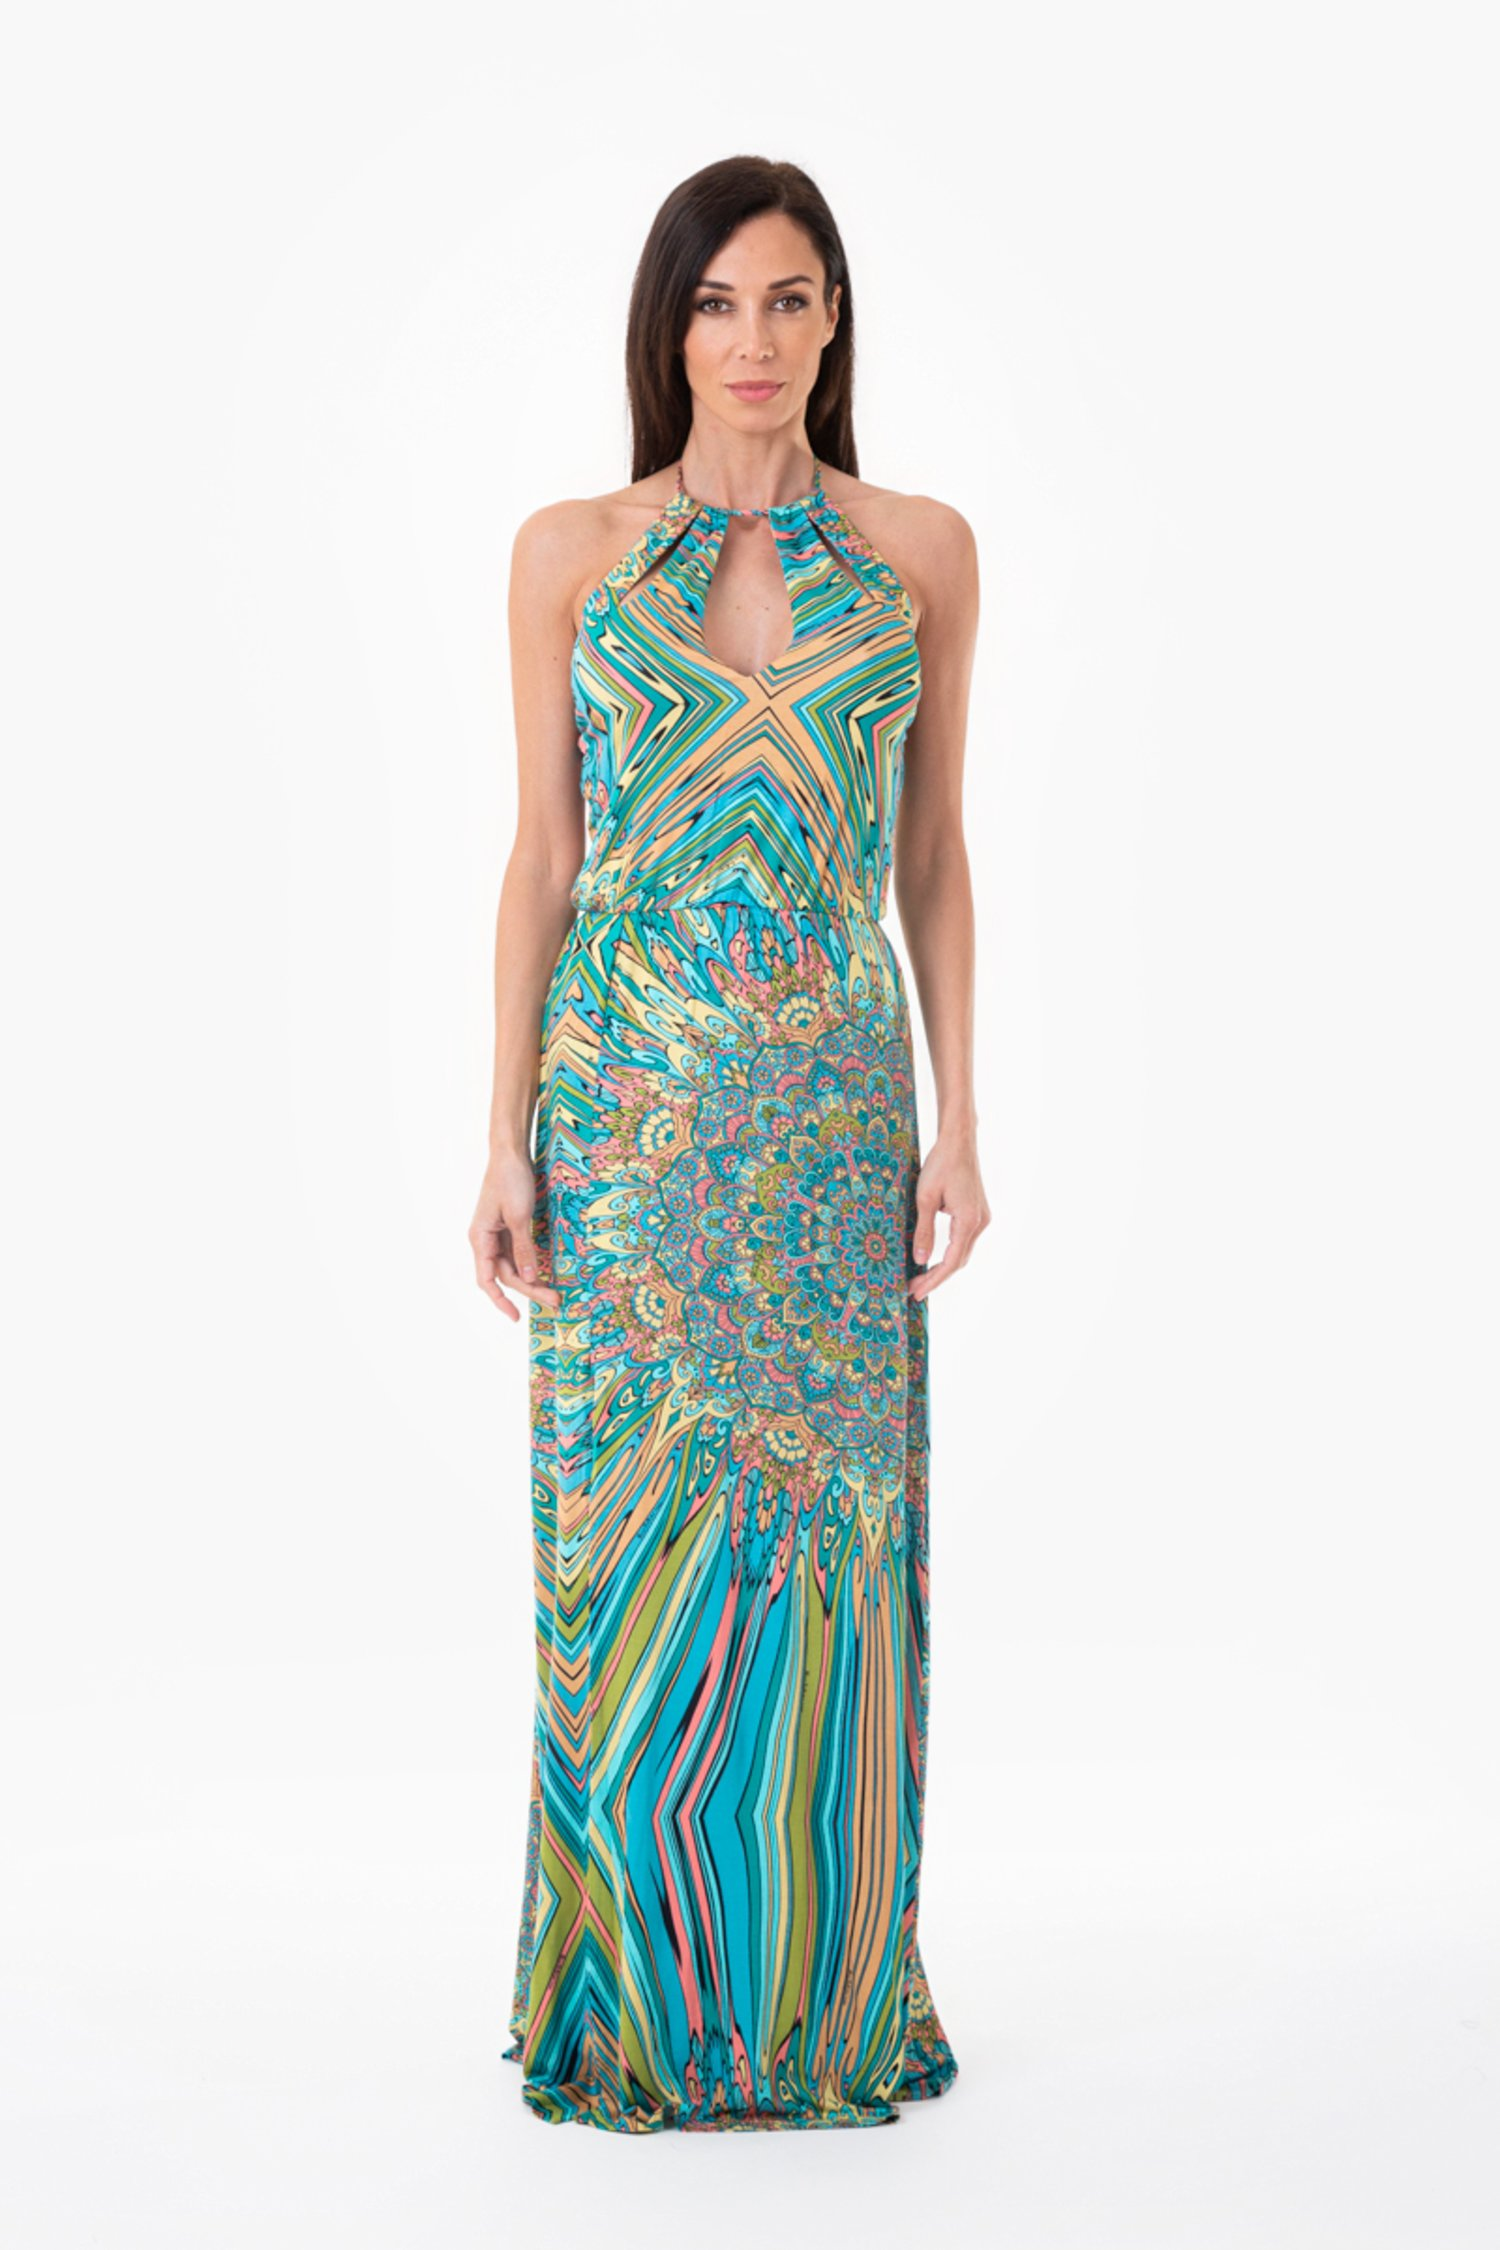 PRINTED JERSEY LONG DRESS WITH TEARDROP NECKLINE - Mandala Azzurro